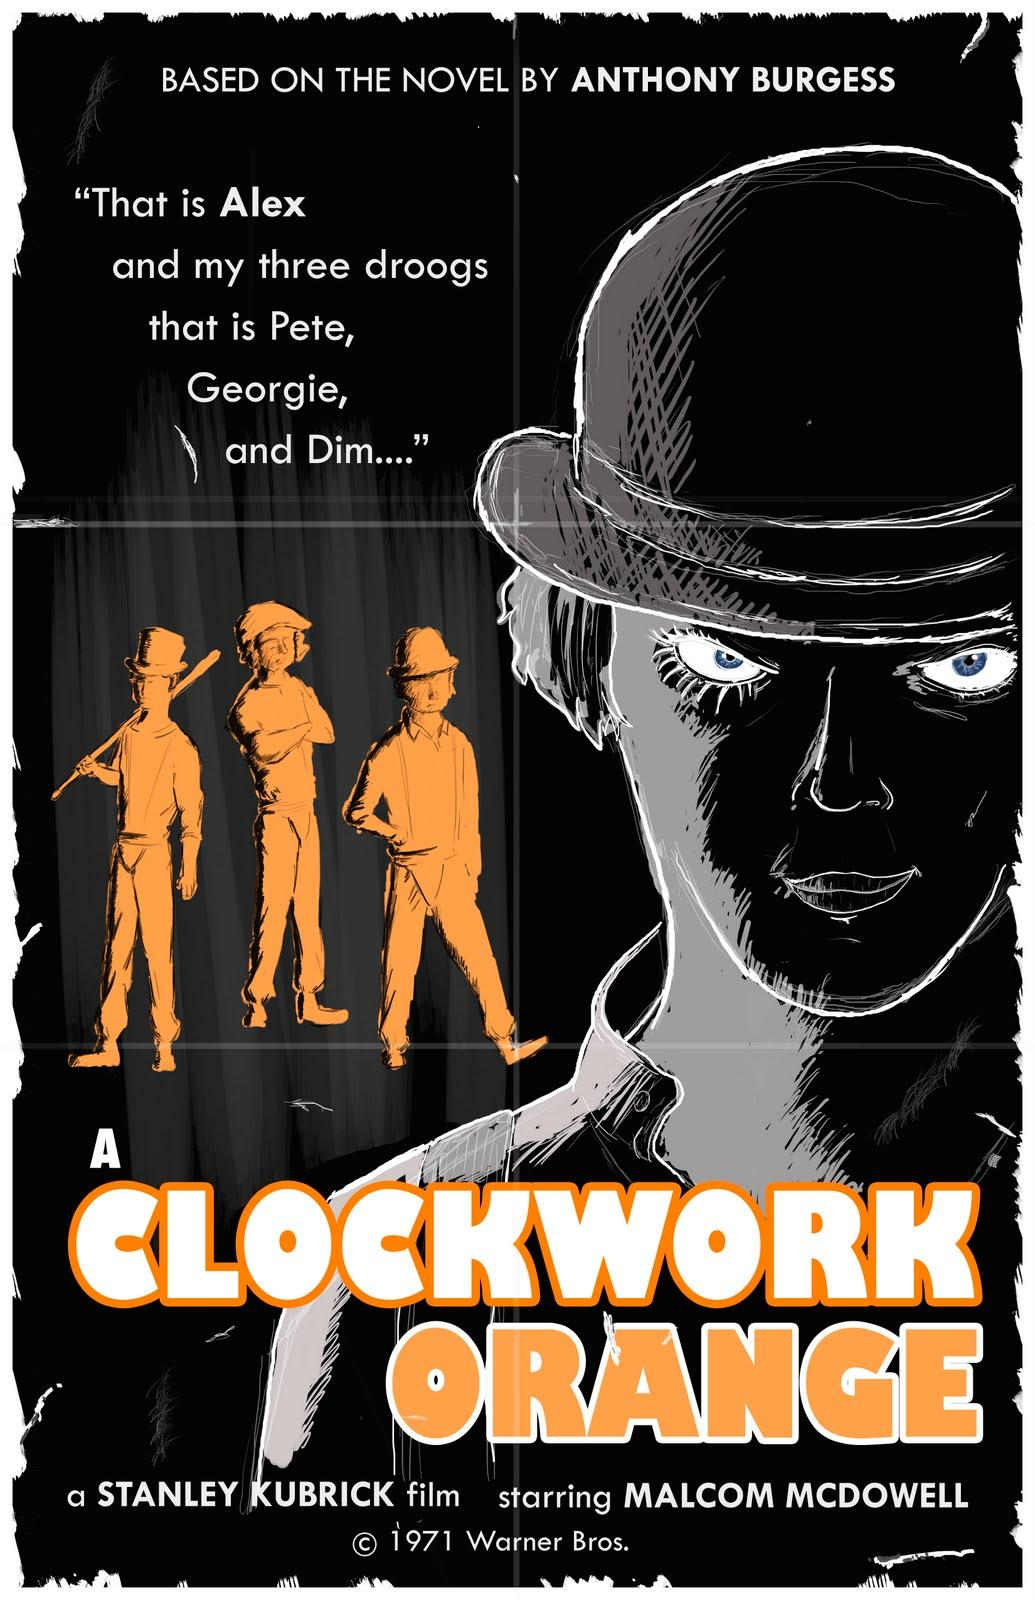 an analysis of the topic of the freedom of choice in a clockwork orange by anthony burgess A clockwork orange is a 1971 dystopian crime film adapted, produced, and directed by stanley kubrick, based on anthony burgess's 1962 novel of the same nameit employs disturbing, violent images to comment on psychiatry, juvenile delinquency, youth gangs, and other social, political, and economic subjects in a dystopian near-future britain.